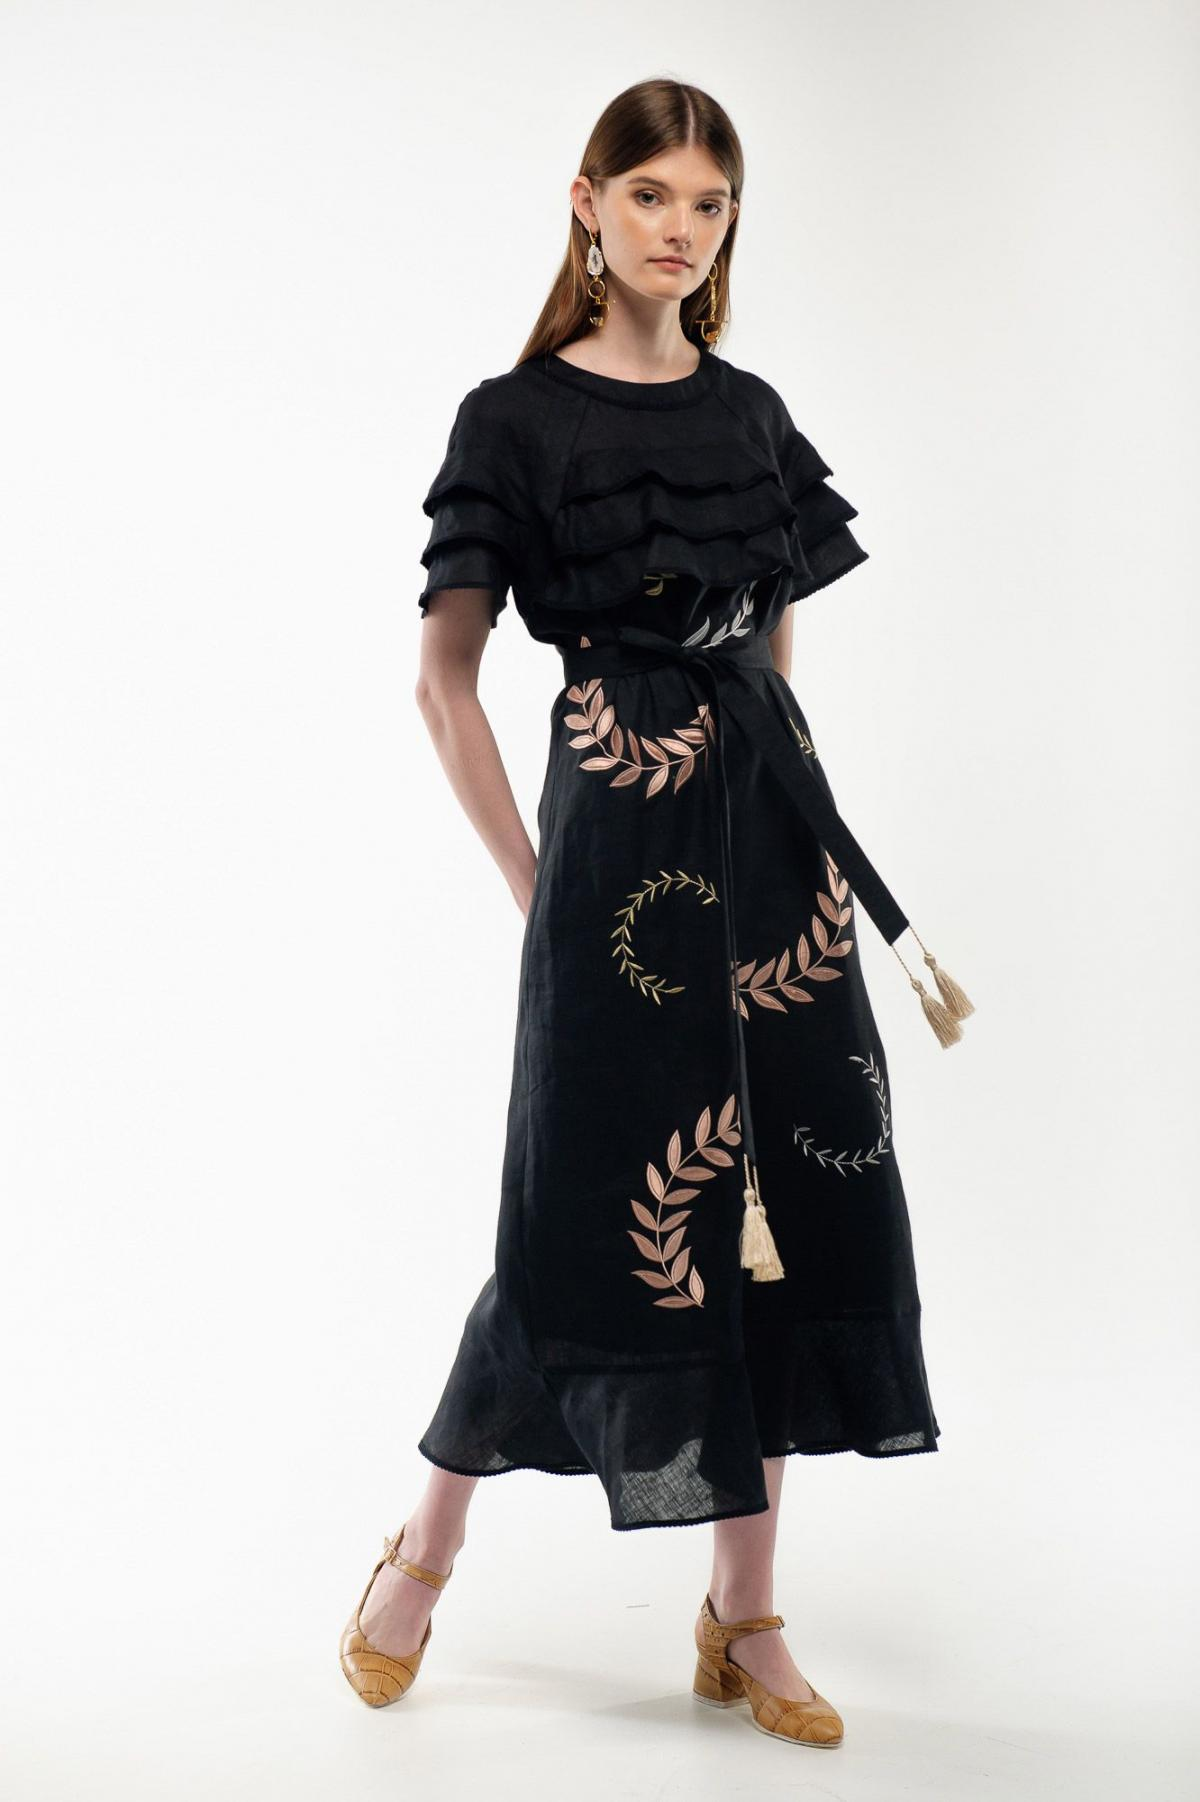 Embroidery dress black Miss. Photo №1. | Narodnyi dim Ukraine